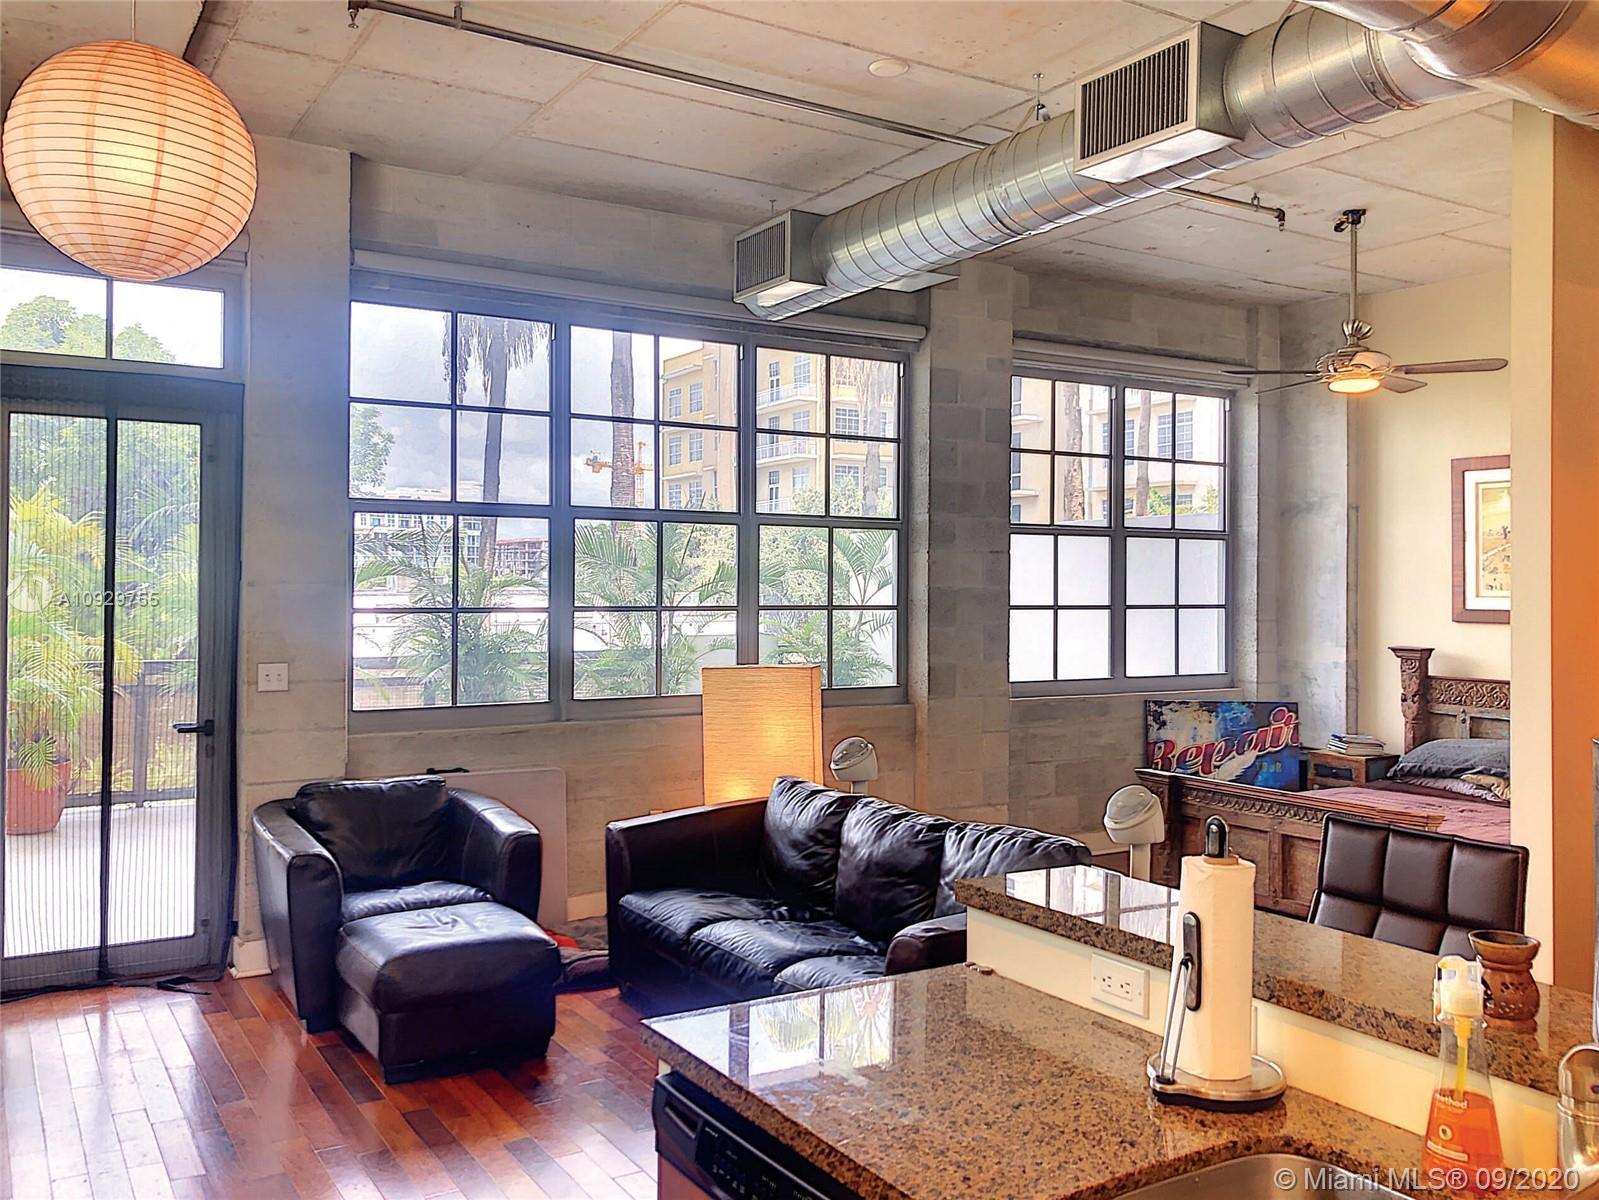 Luxury New York-style loft.  Unique opportunity in Fort Lauderdale!